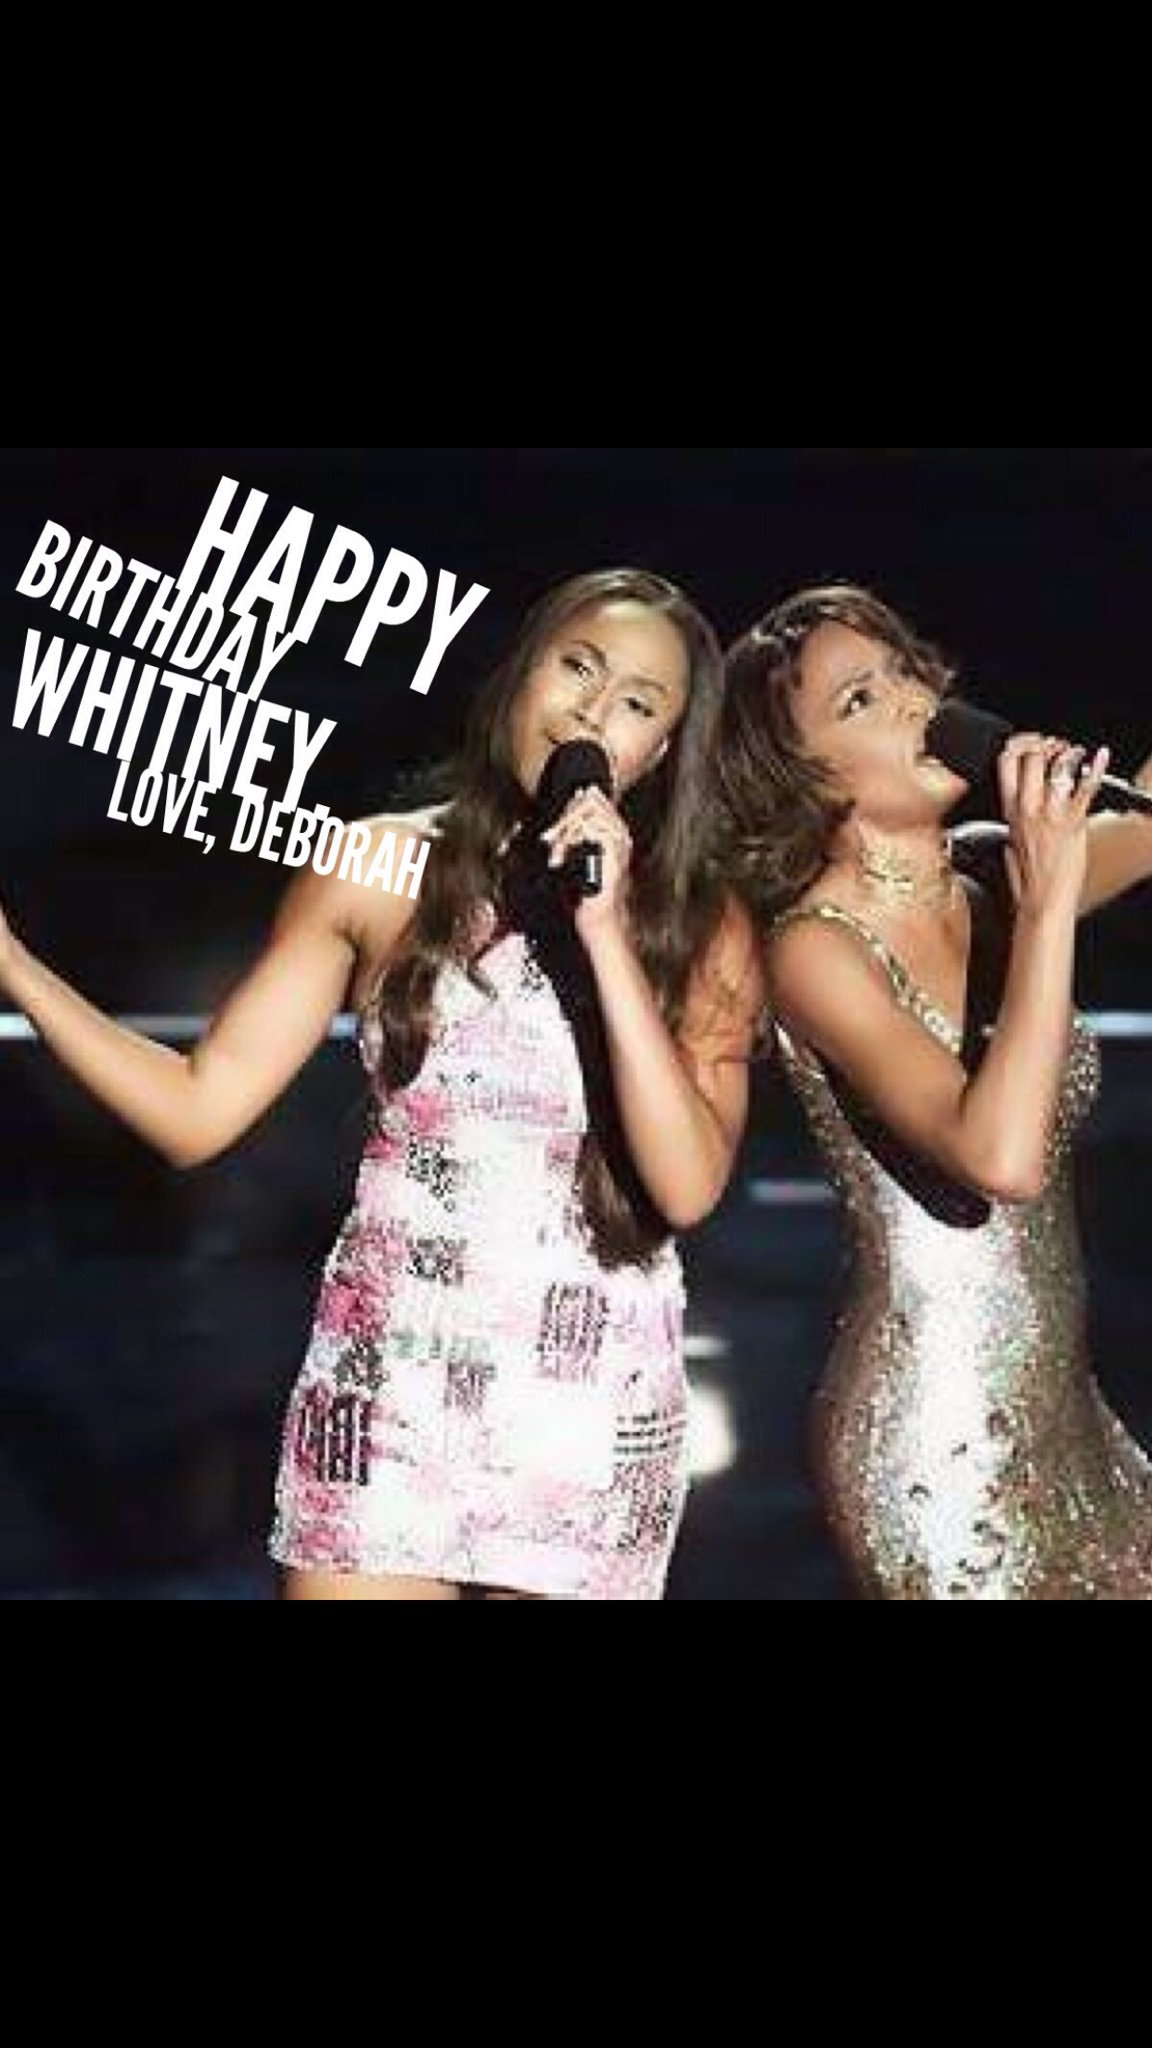 Huffpostqueer: Deborah_Cox: Happy Birthday Whitney